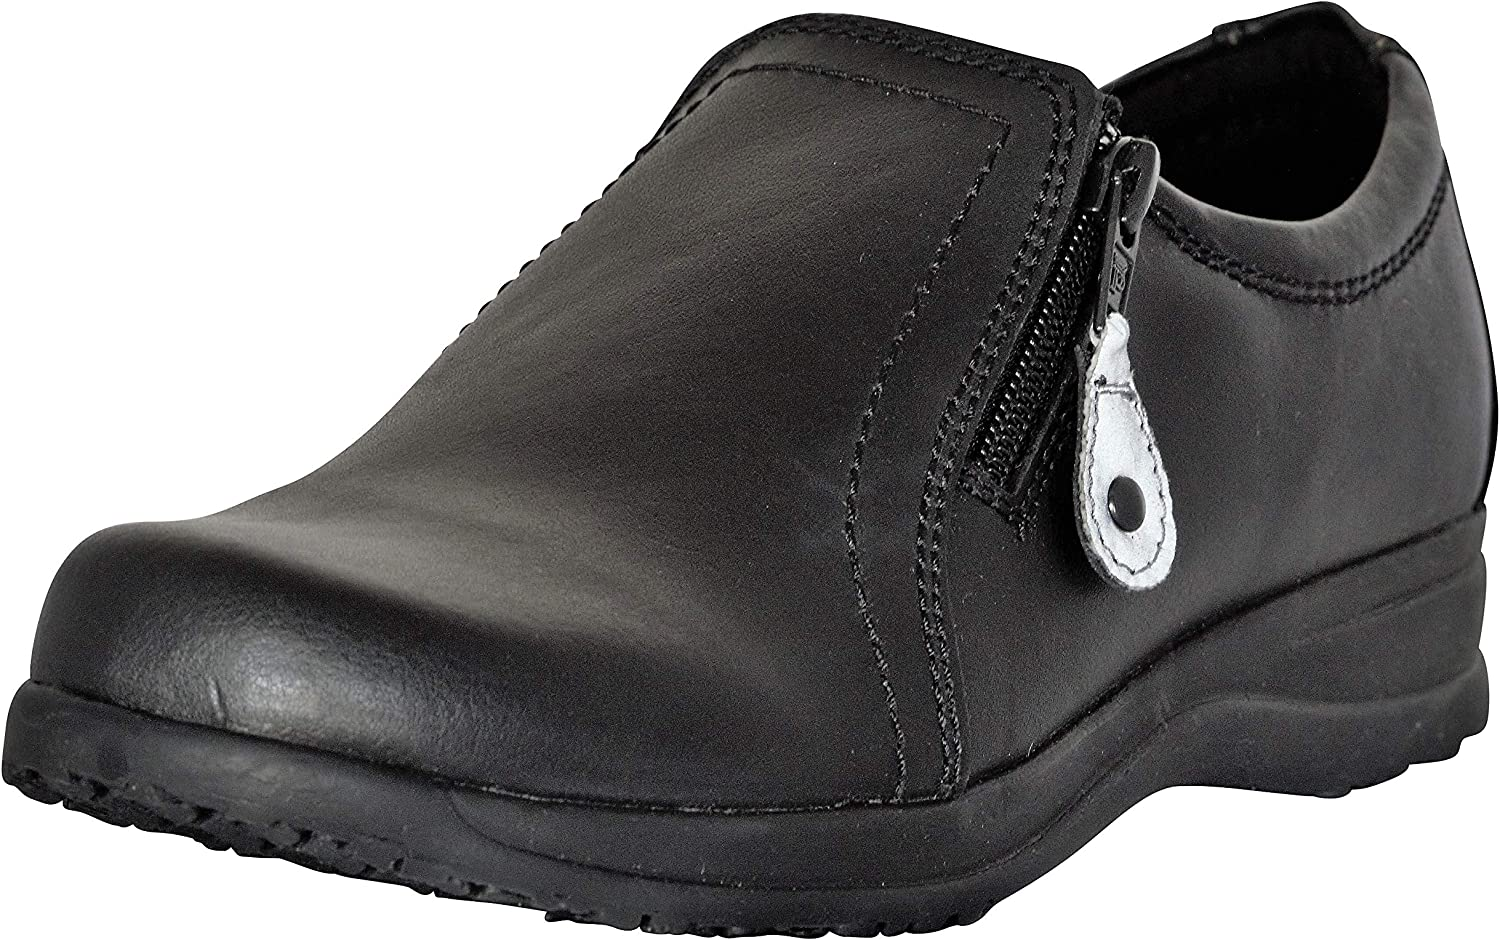 Dr. Scholl's Comfort Women shoes Genuine Leather Gel Cushioned Black Loafer